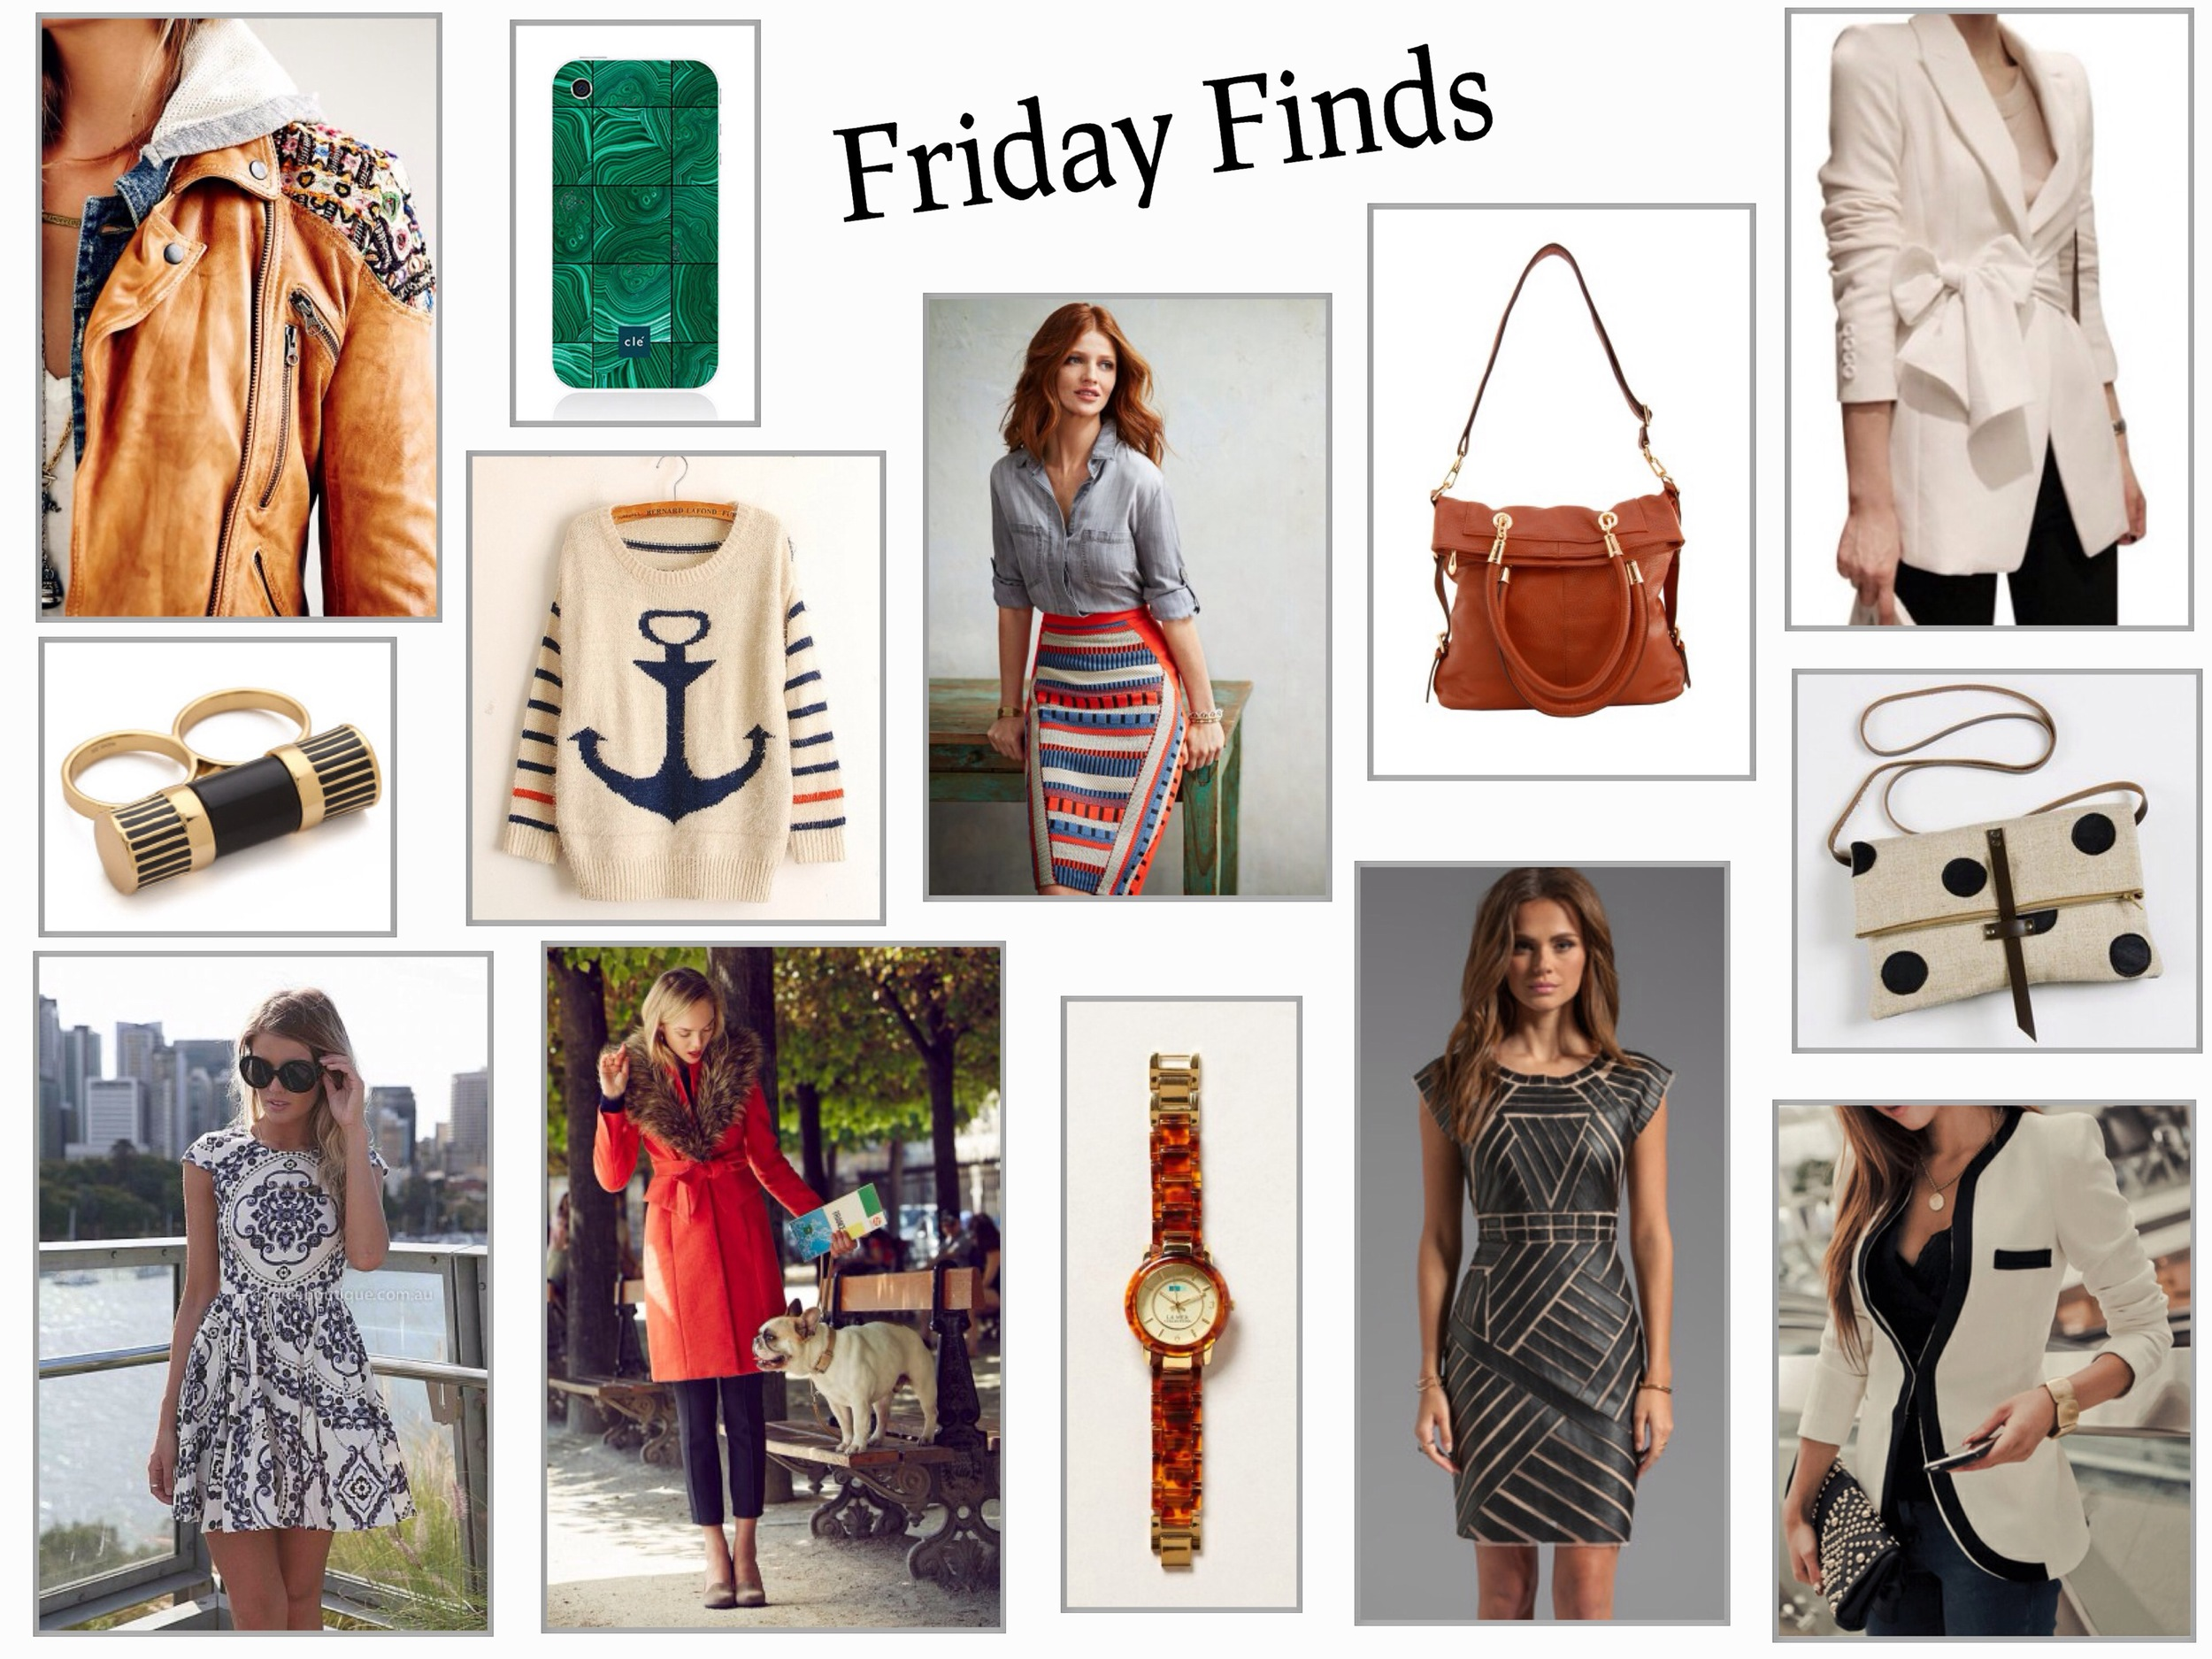 Clockwise from left to right:  Free People Embellished Leather Biker Jacket    Emerald Green Malachite iPhone Case    Nautical Anchor Mohair Sweater    Red White Blue Merida Pencil Skirt    Brown Leather Fold Over Shoulder Bag    Elegant Bowknot White Blazer    Polka Dot Fold Over Clutch    White Blazer With Black Collar    Catherine Malandrino Avalon Leather Dress    Shelby Tortoiseshell Watch    Montaigne Red Trench Coat    Paisley Black and White Summer Dress    Rachel Zoe Barrel Multi Finger Ring